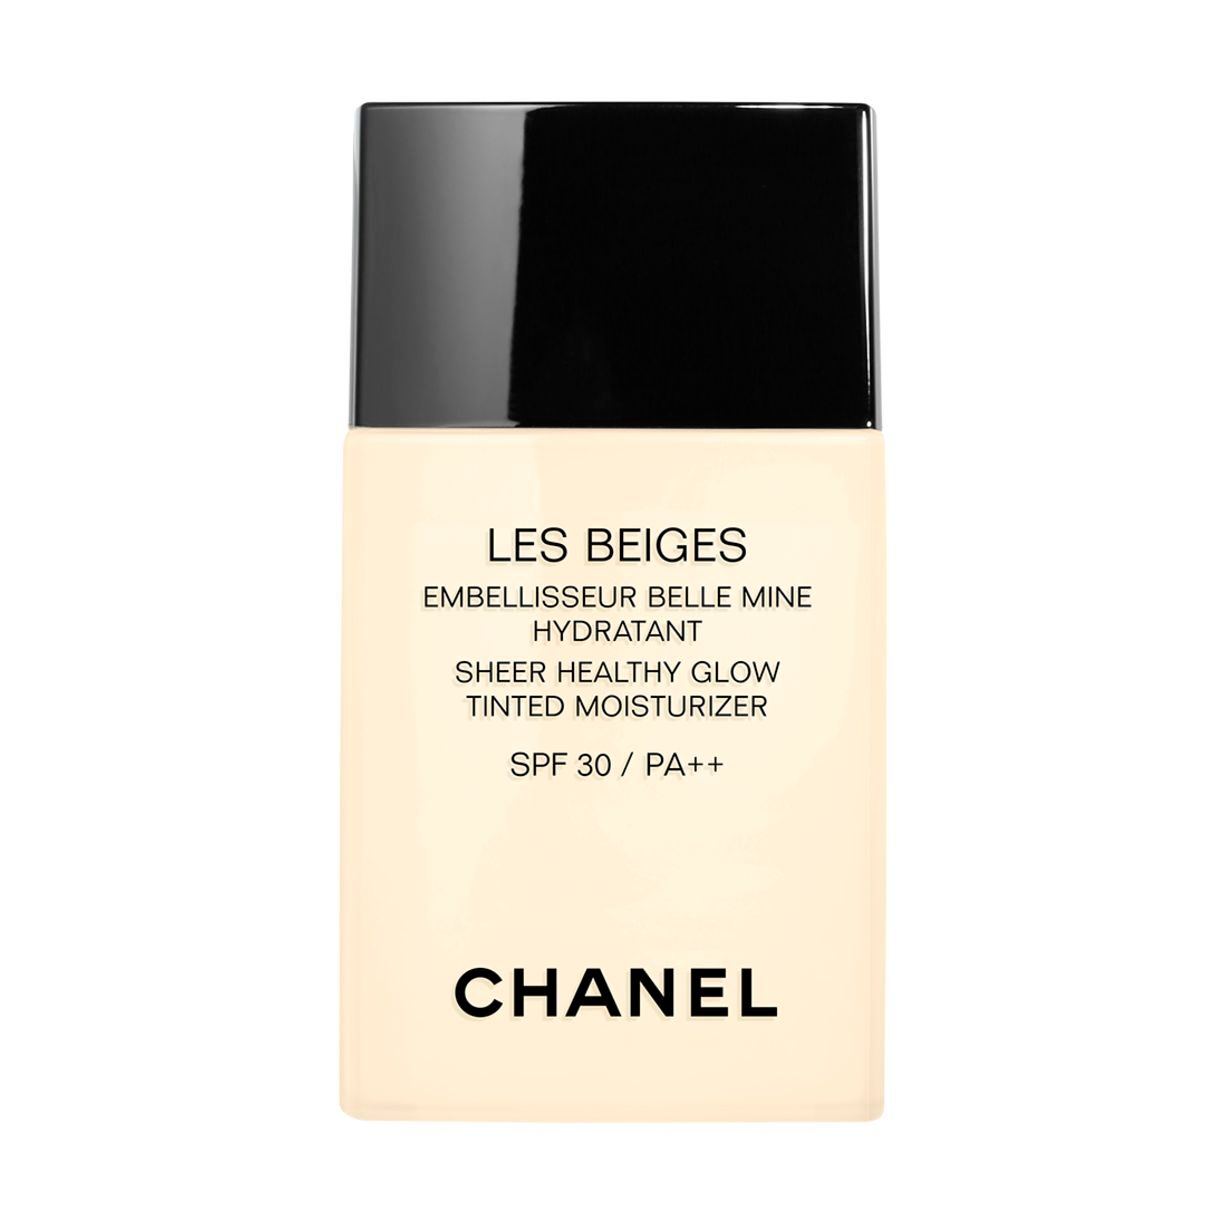 LES BEIGES SHEER HEALTHY GLOW TINTED MOISTURIZER SPF 30 / PA++ LIGHT 30ML